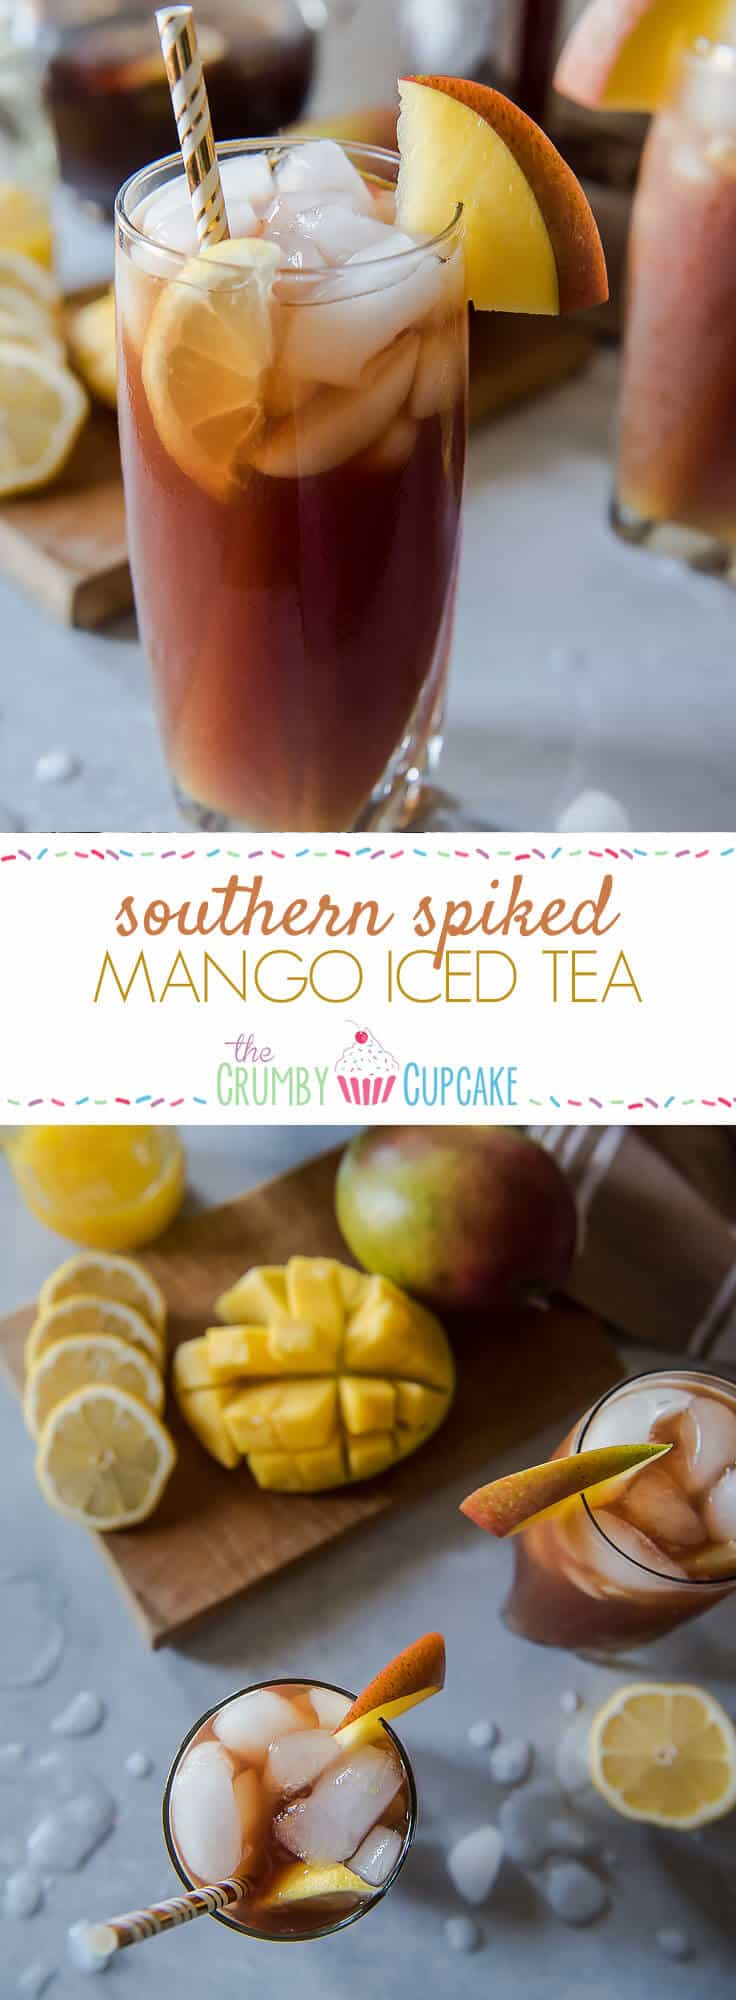 Change up your brunch beverage game with this Southern Spiked Mango Iced Tea! Arnold Palmer-style lemon iced tea combined with homemade mango nectar and a shot of your favorite bourbon is a tasty tropical, Southern way to cool down a balmy morning meal.